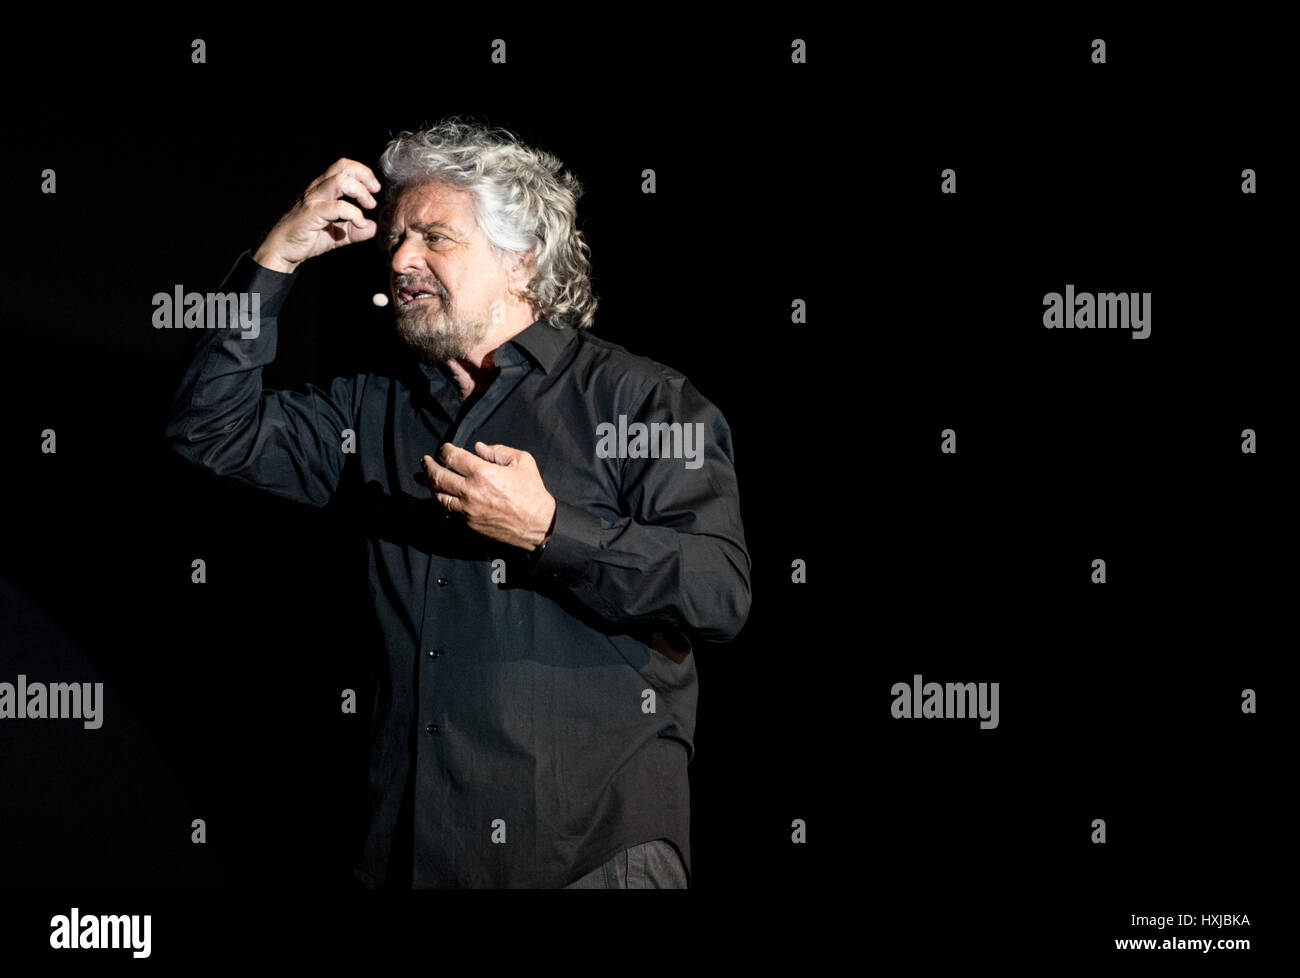 Turin, Italy. 28th March, 2017. The Italian comedian and Politician (leader of 'movimento cinque stelle') - Stock Image